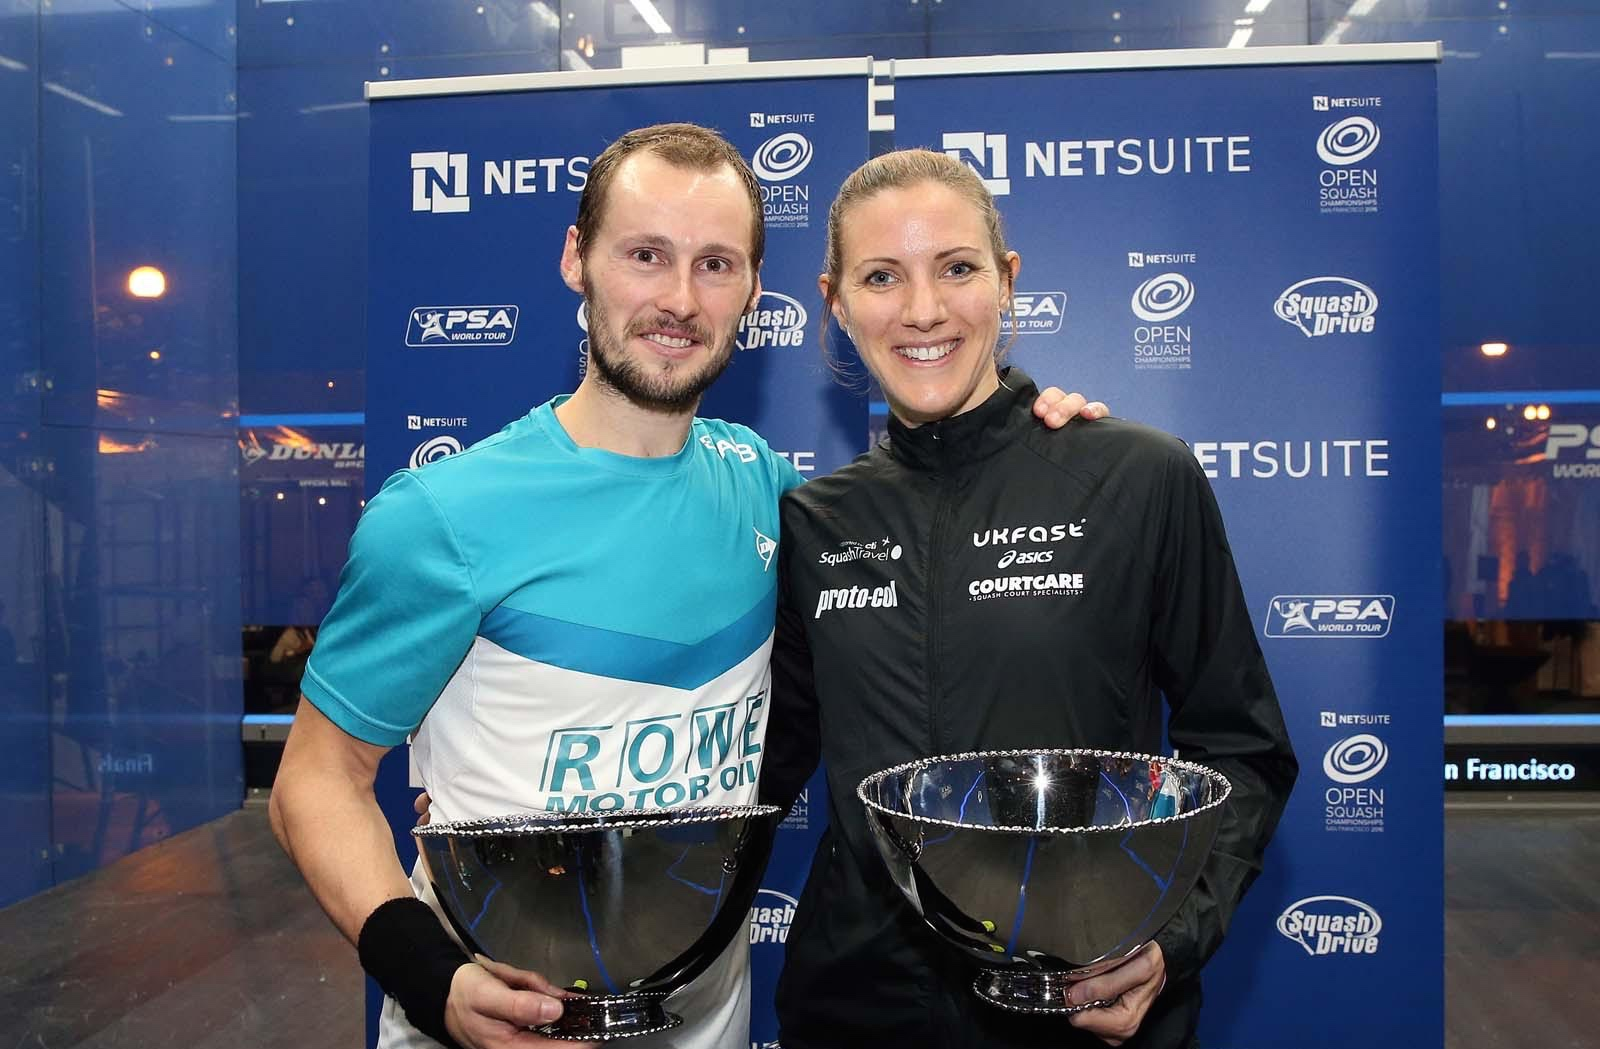 Gregory Gaultier and Laura Massaro share the spoils from the growth of the PSA World Tour